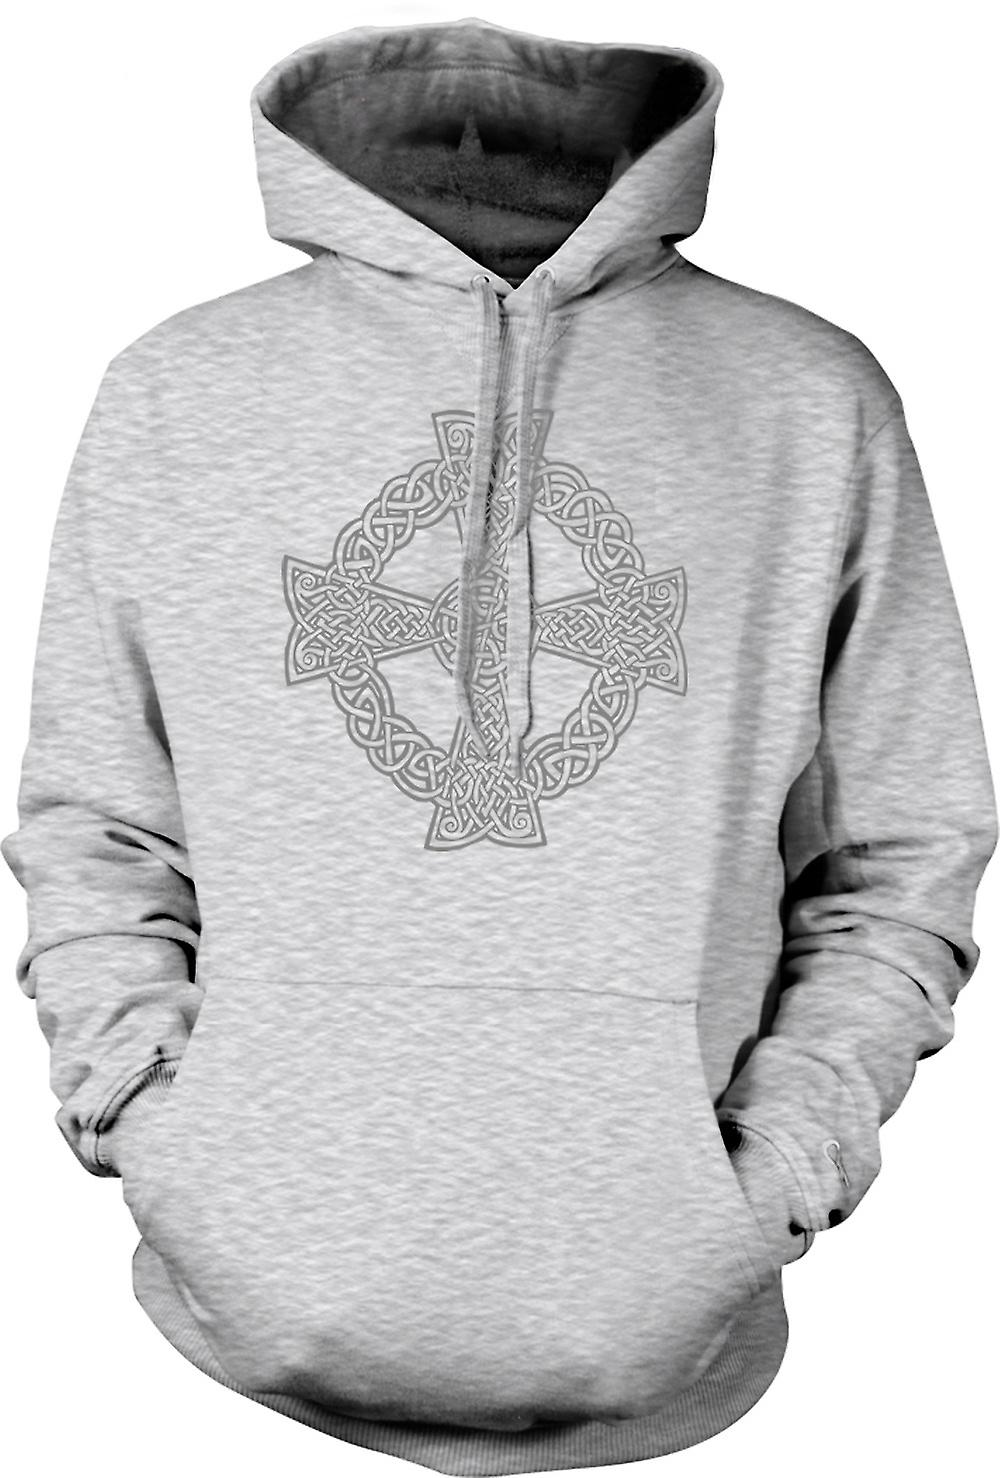 Mens Hoodie - Croix celtique 1 - Design Tattoo